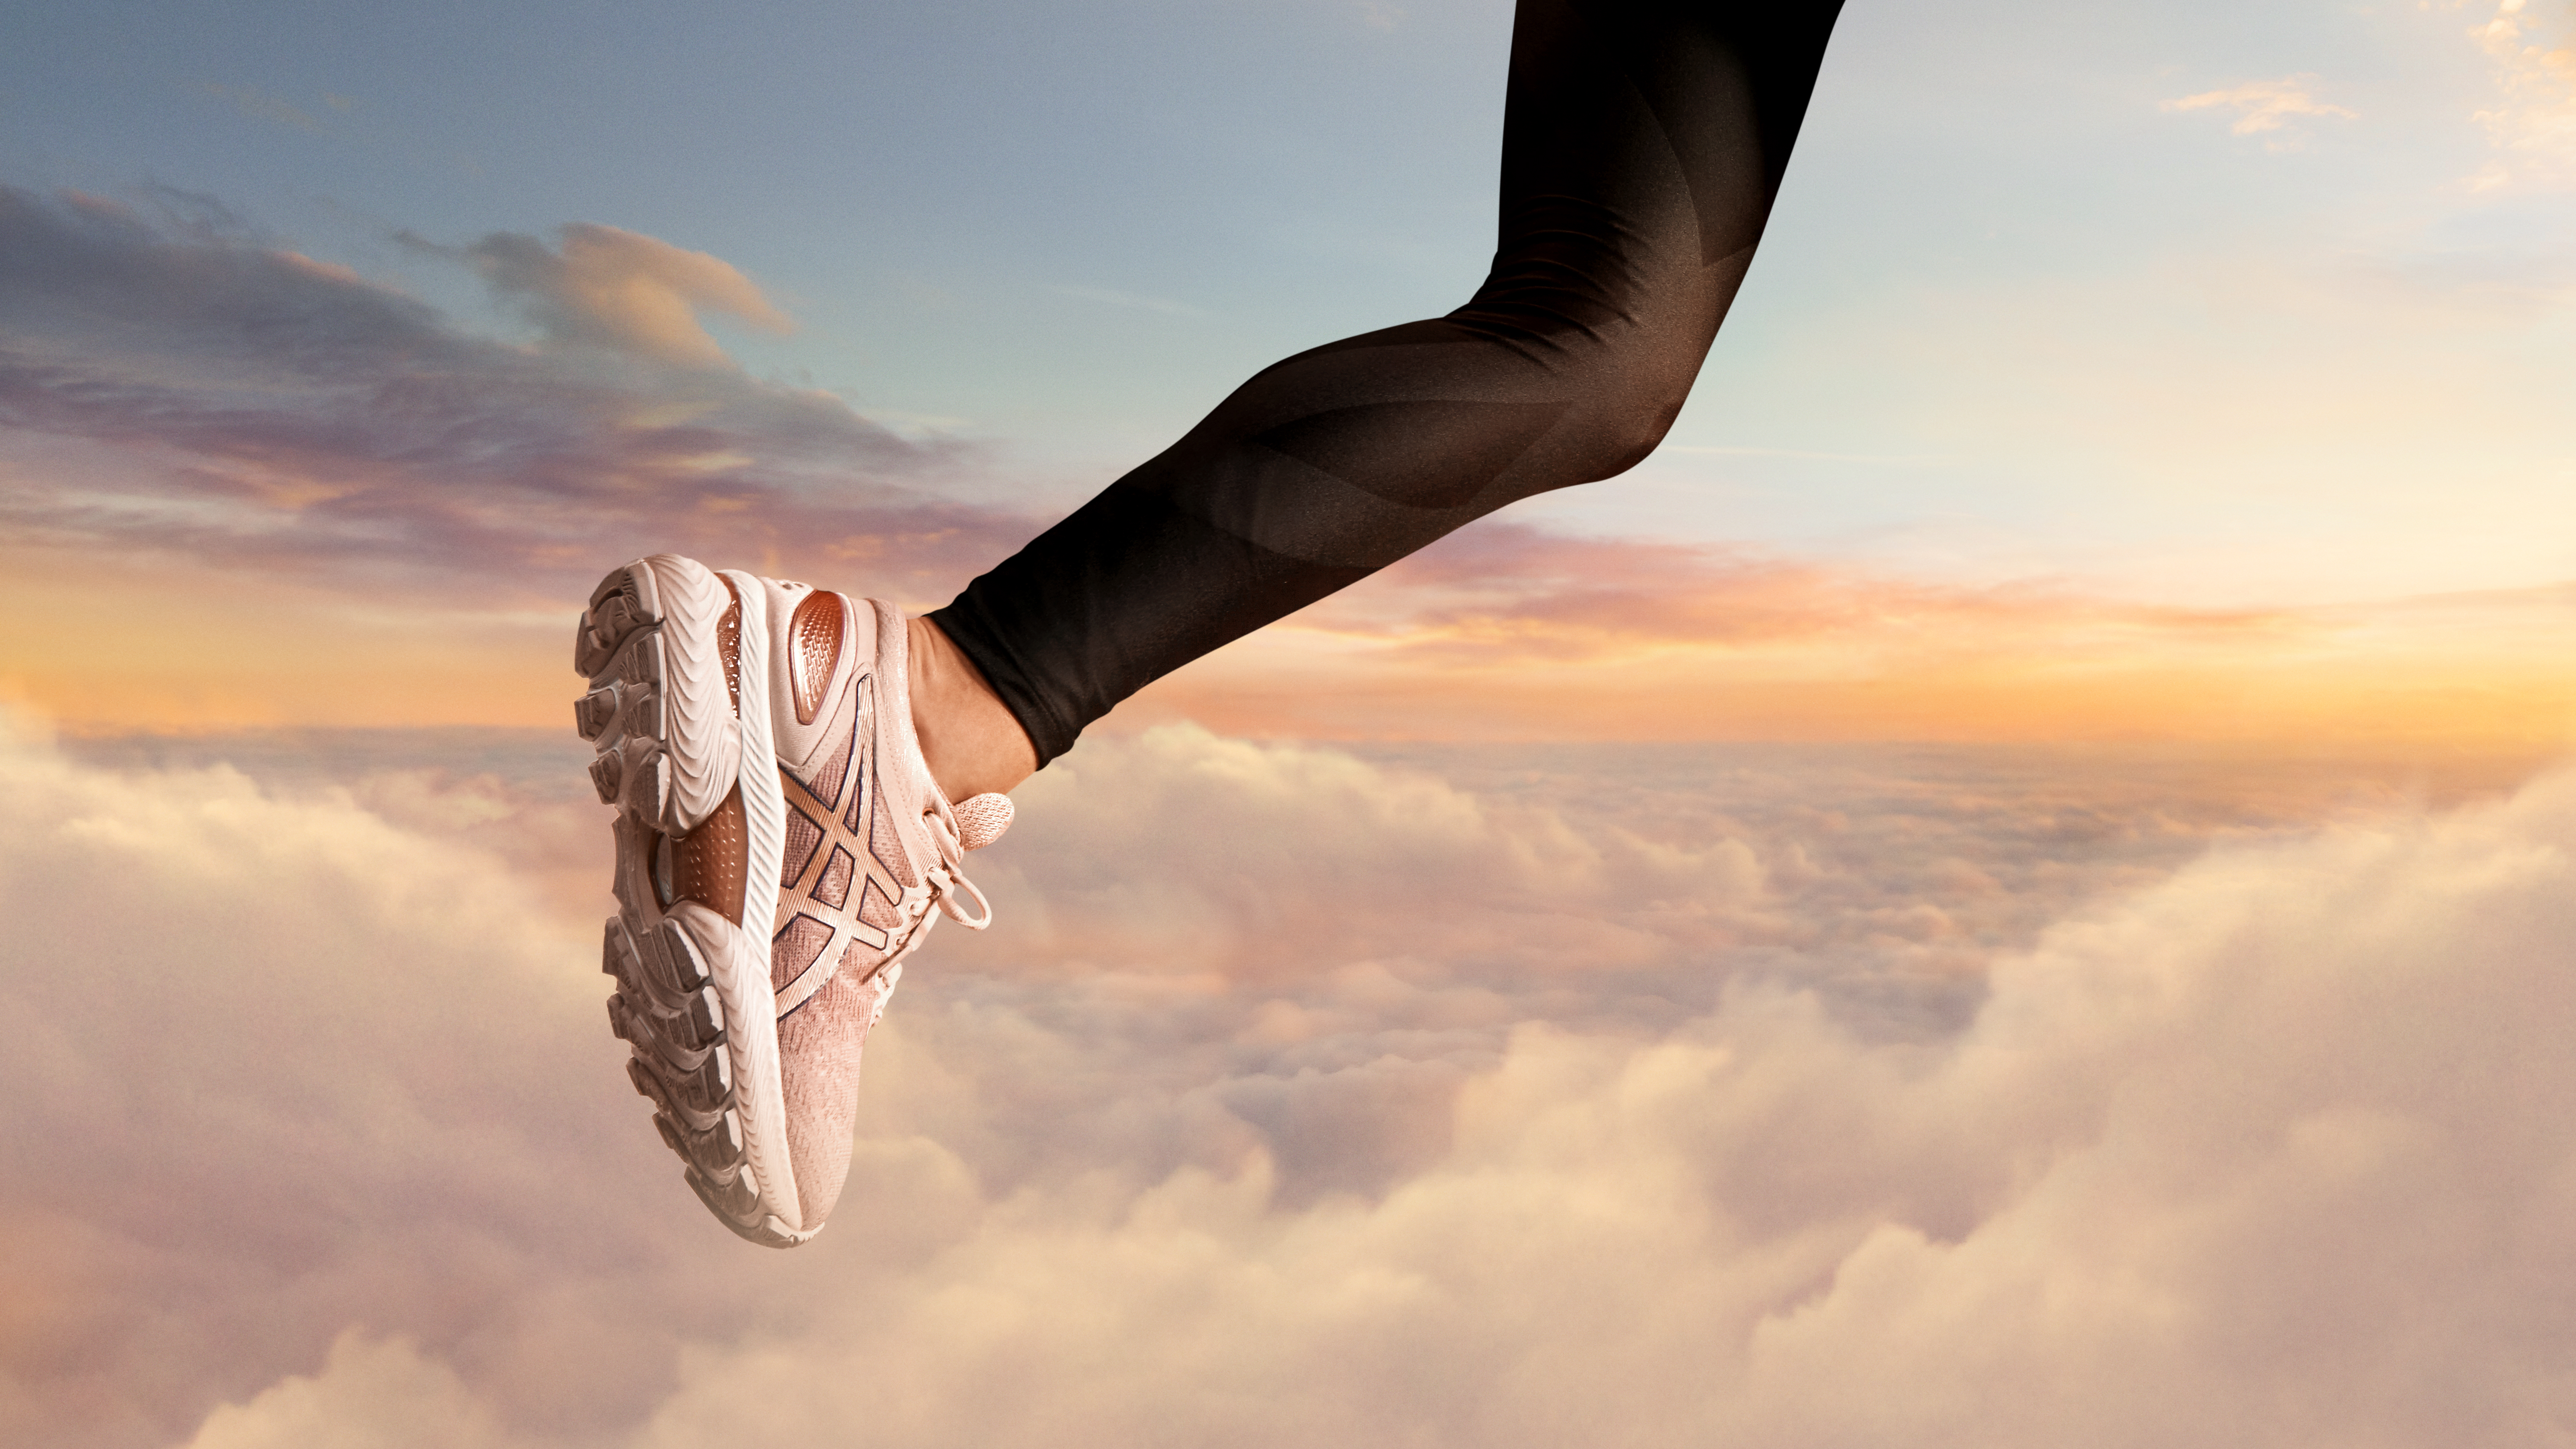 Morgue Turbulencia occidental  INTRODUCING NEW GEL-NIMBUS™ 22 SHOE FOR THE MOST COMFORTABLE RIDE ON THE  MARKET TO DATE | ASICS Global - The Official Corporate Website for ASICS  and Its Affiliates